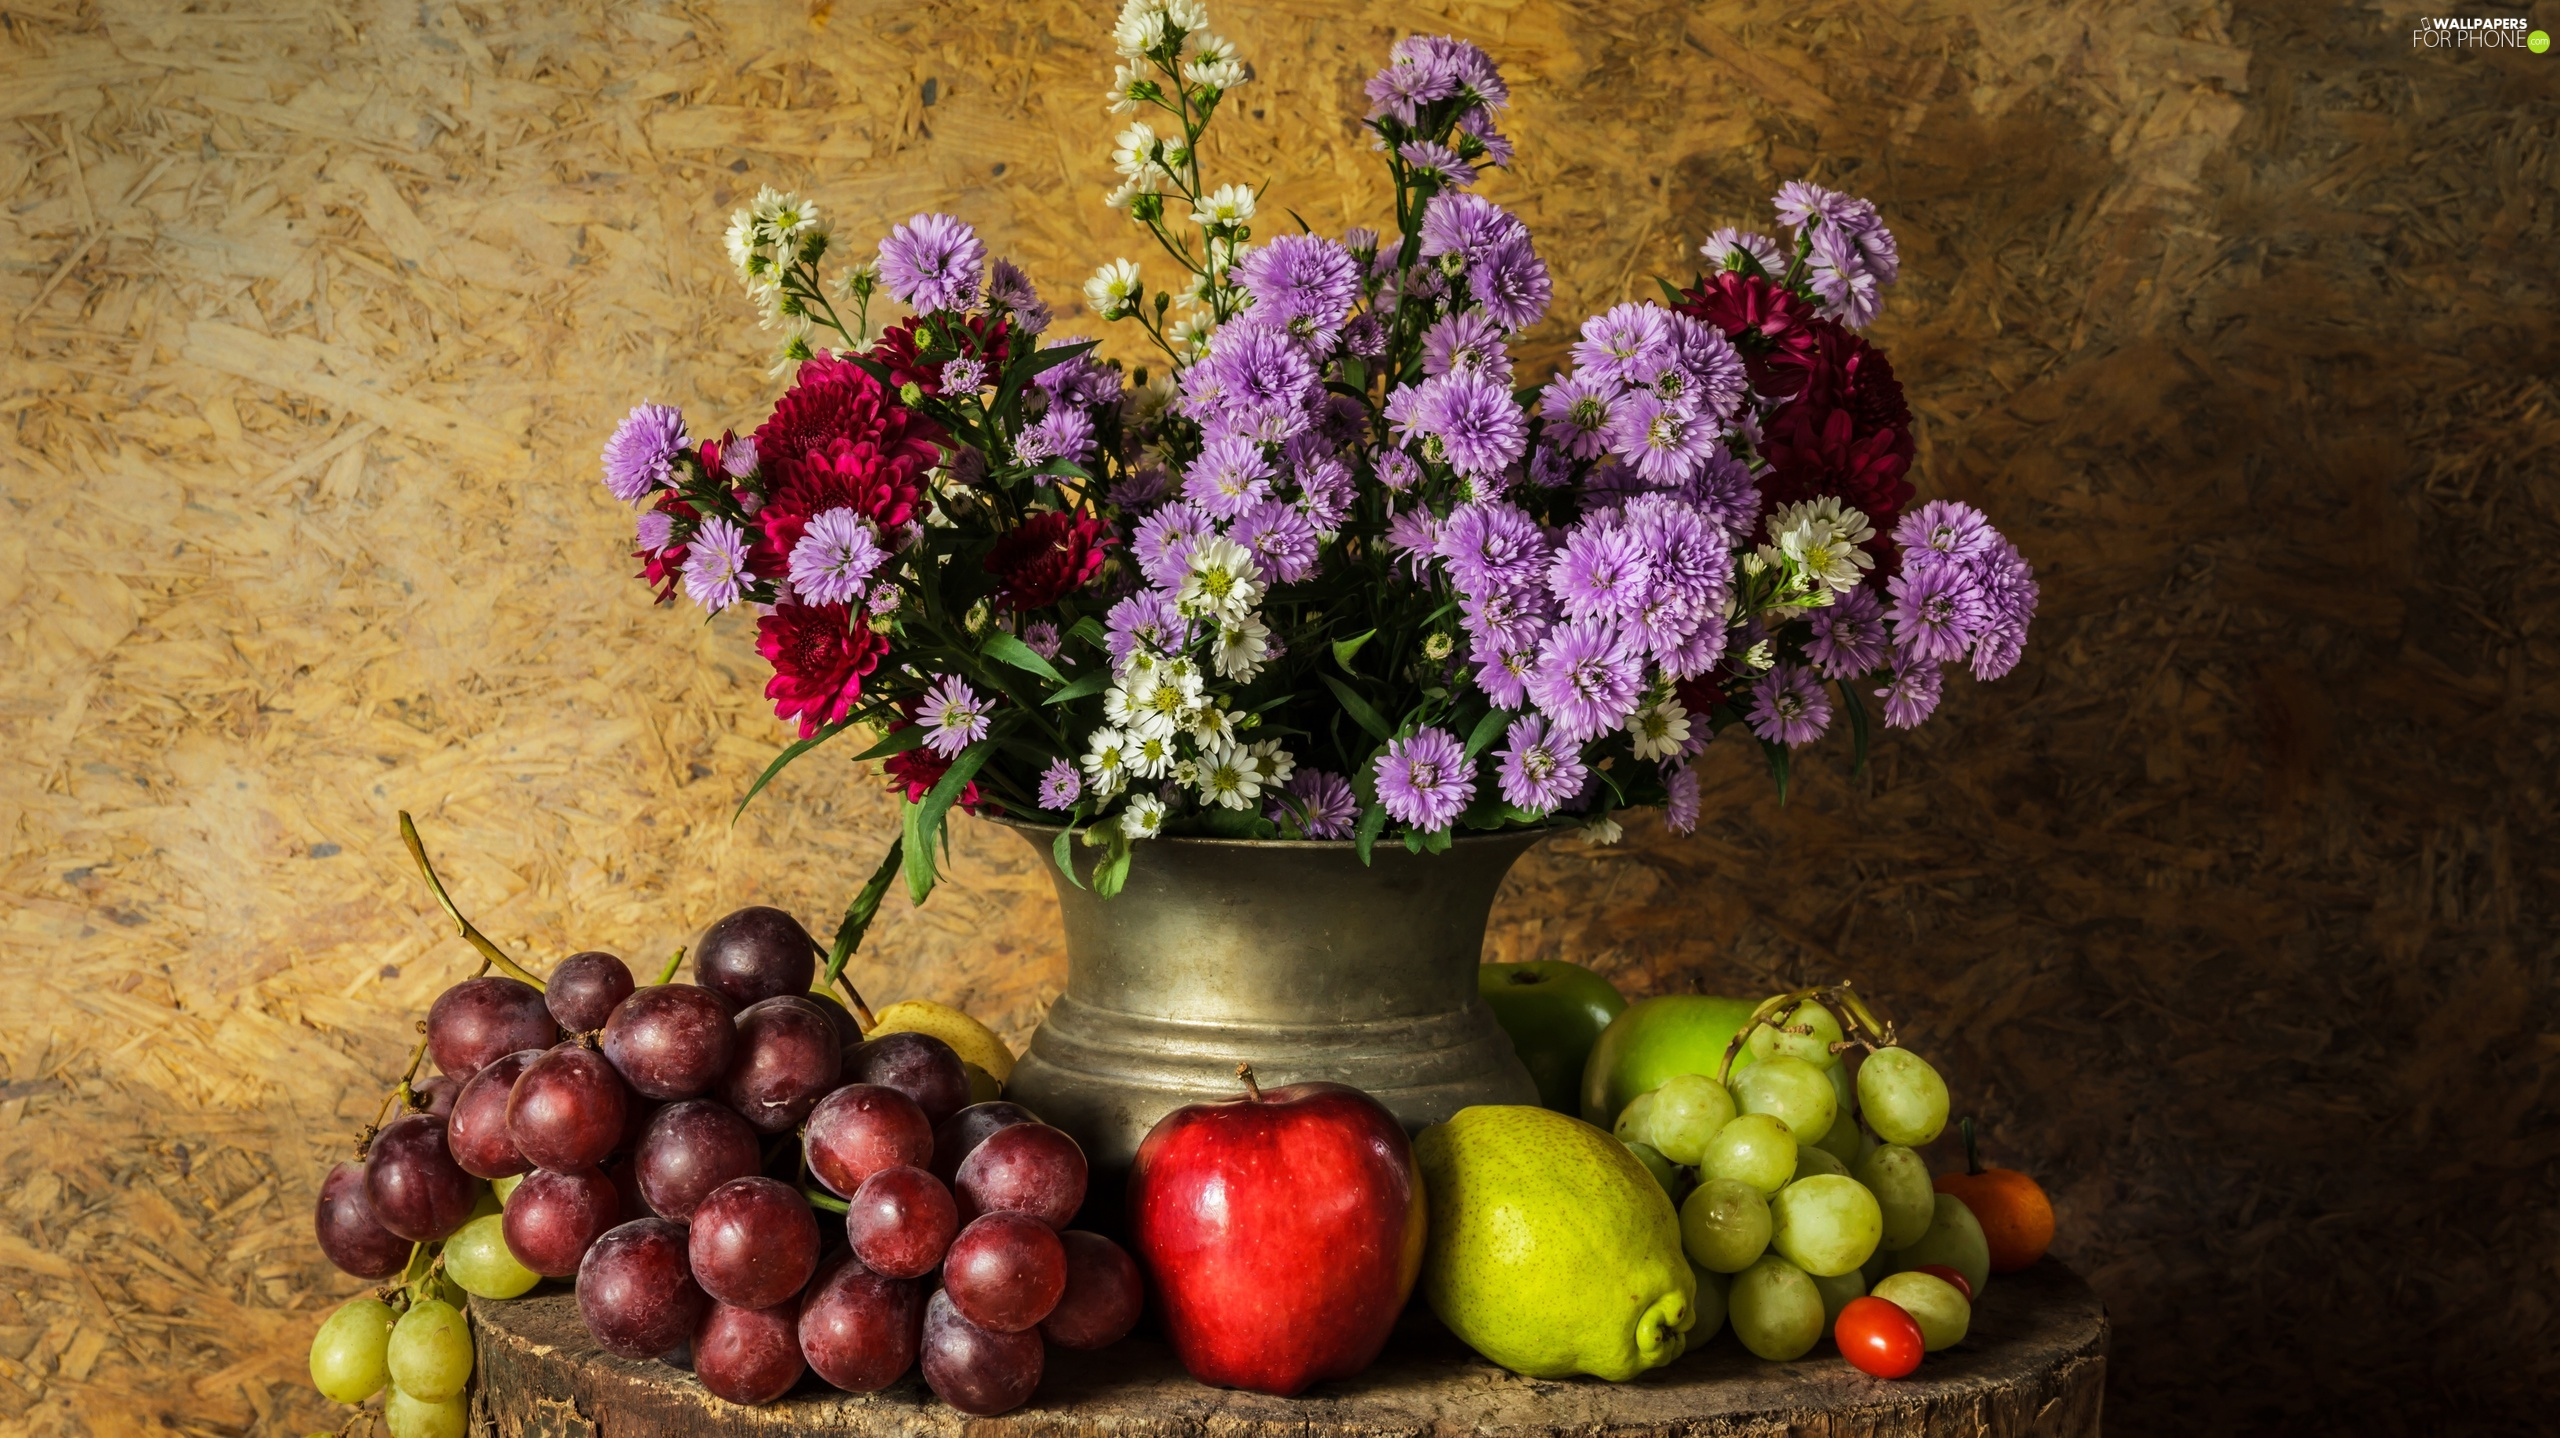 Vase, Fruits, composition, Grapes, Truck concrete mixer, Aster, Flowers, apples